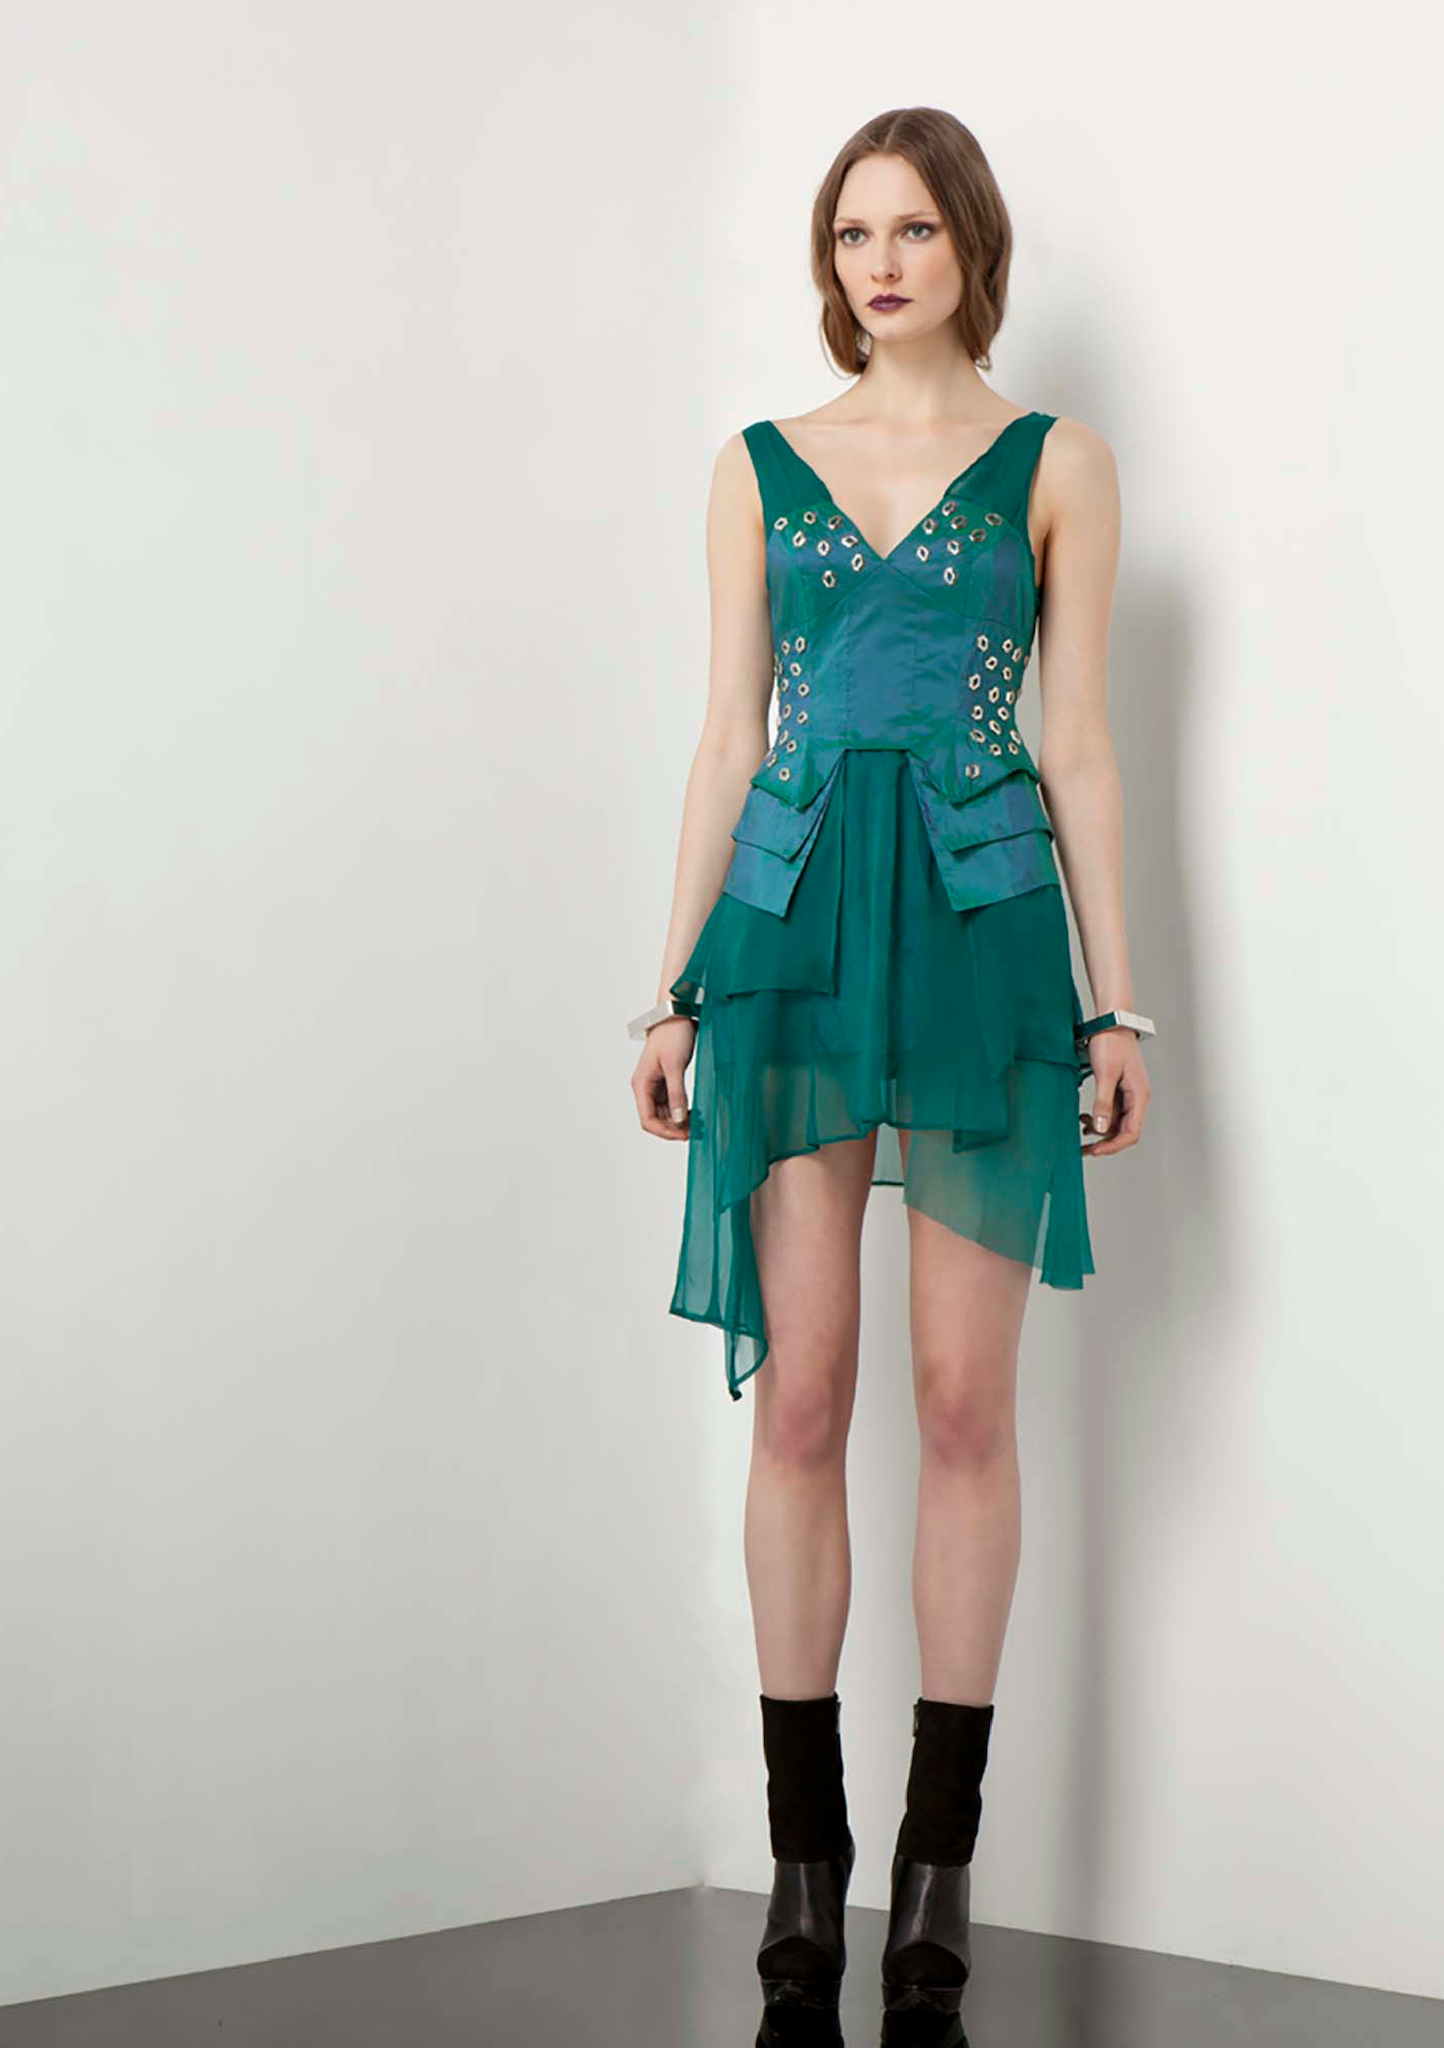 Asymmetric, green cocktail dress with a studded detail on the chest and waist